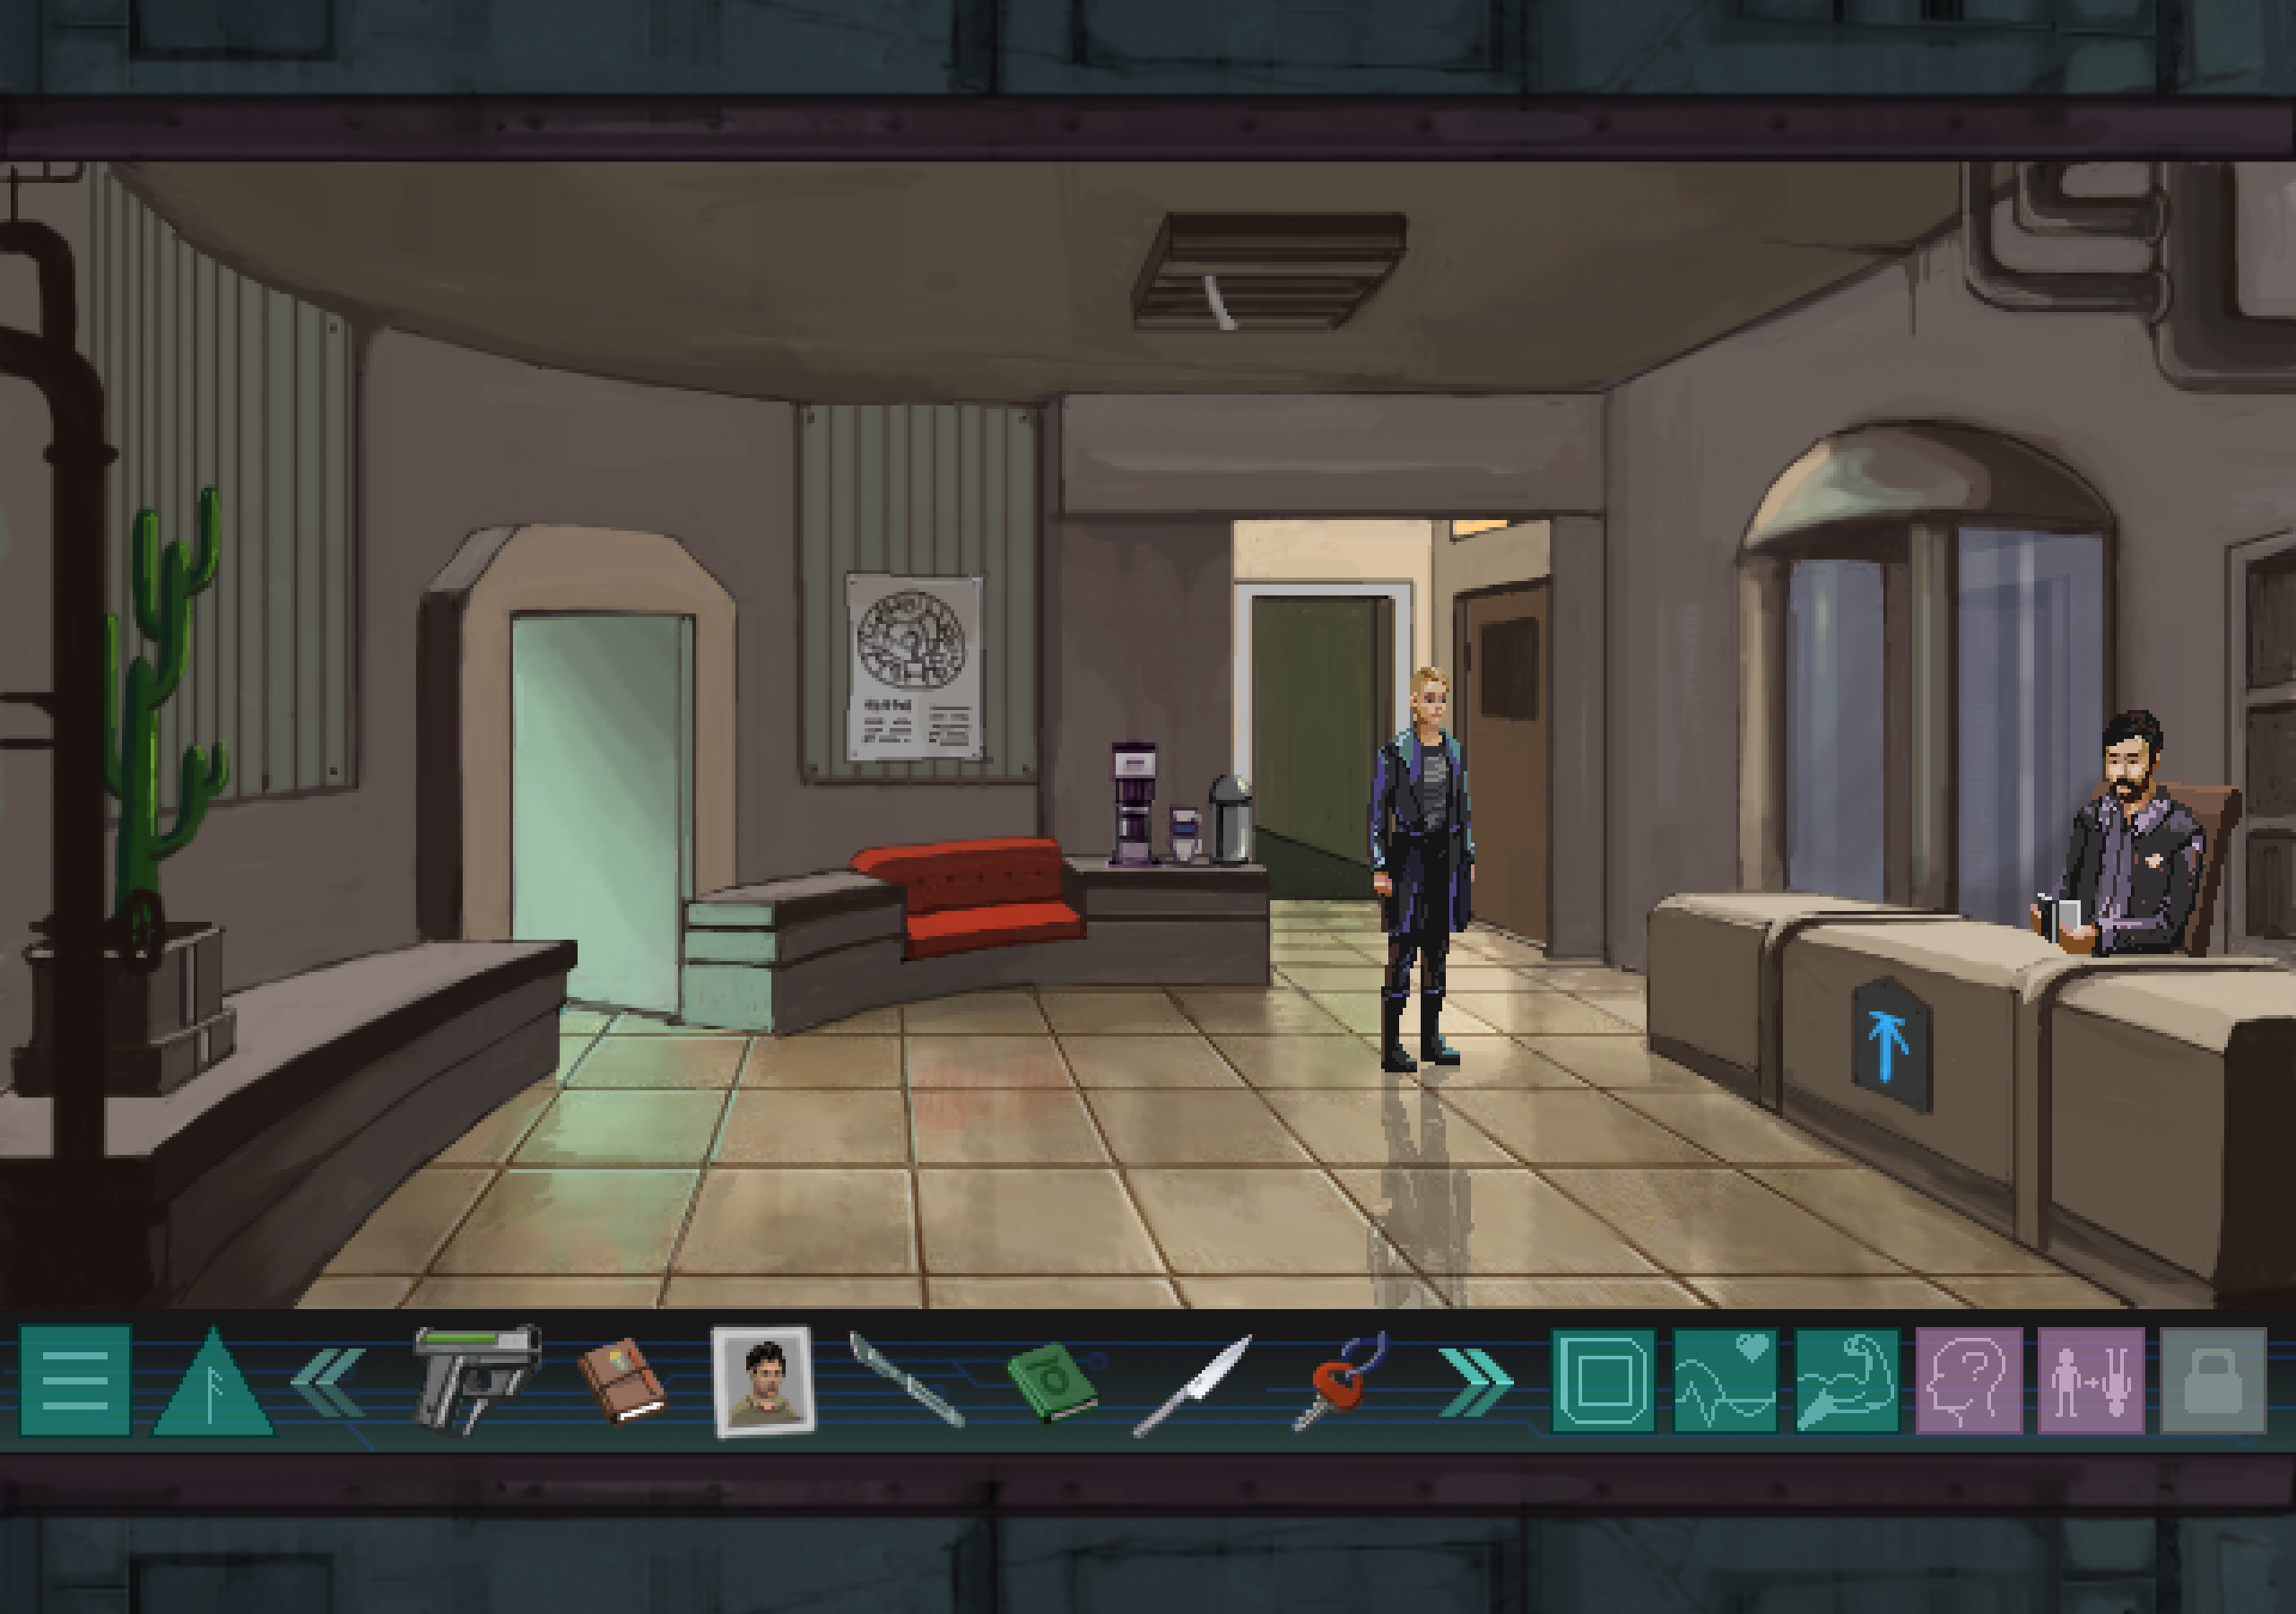 A screenshot of Whispers of a Machine. It shows a futuristic police station in a gritty, pixel art style with the main protagonist in the centre. She is white with short blonde hair.